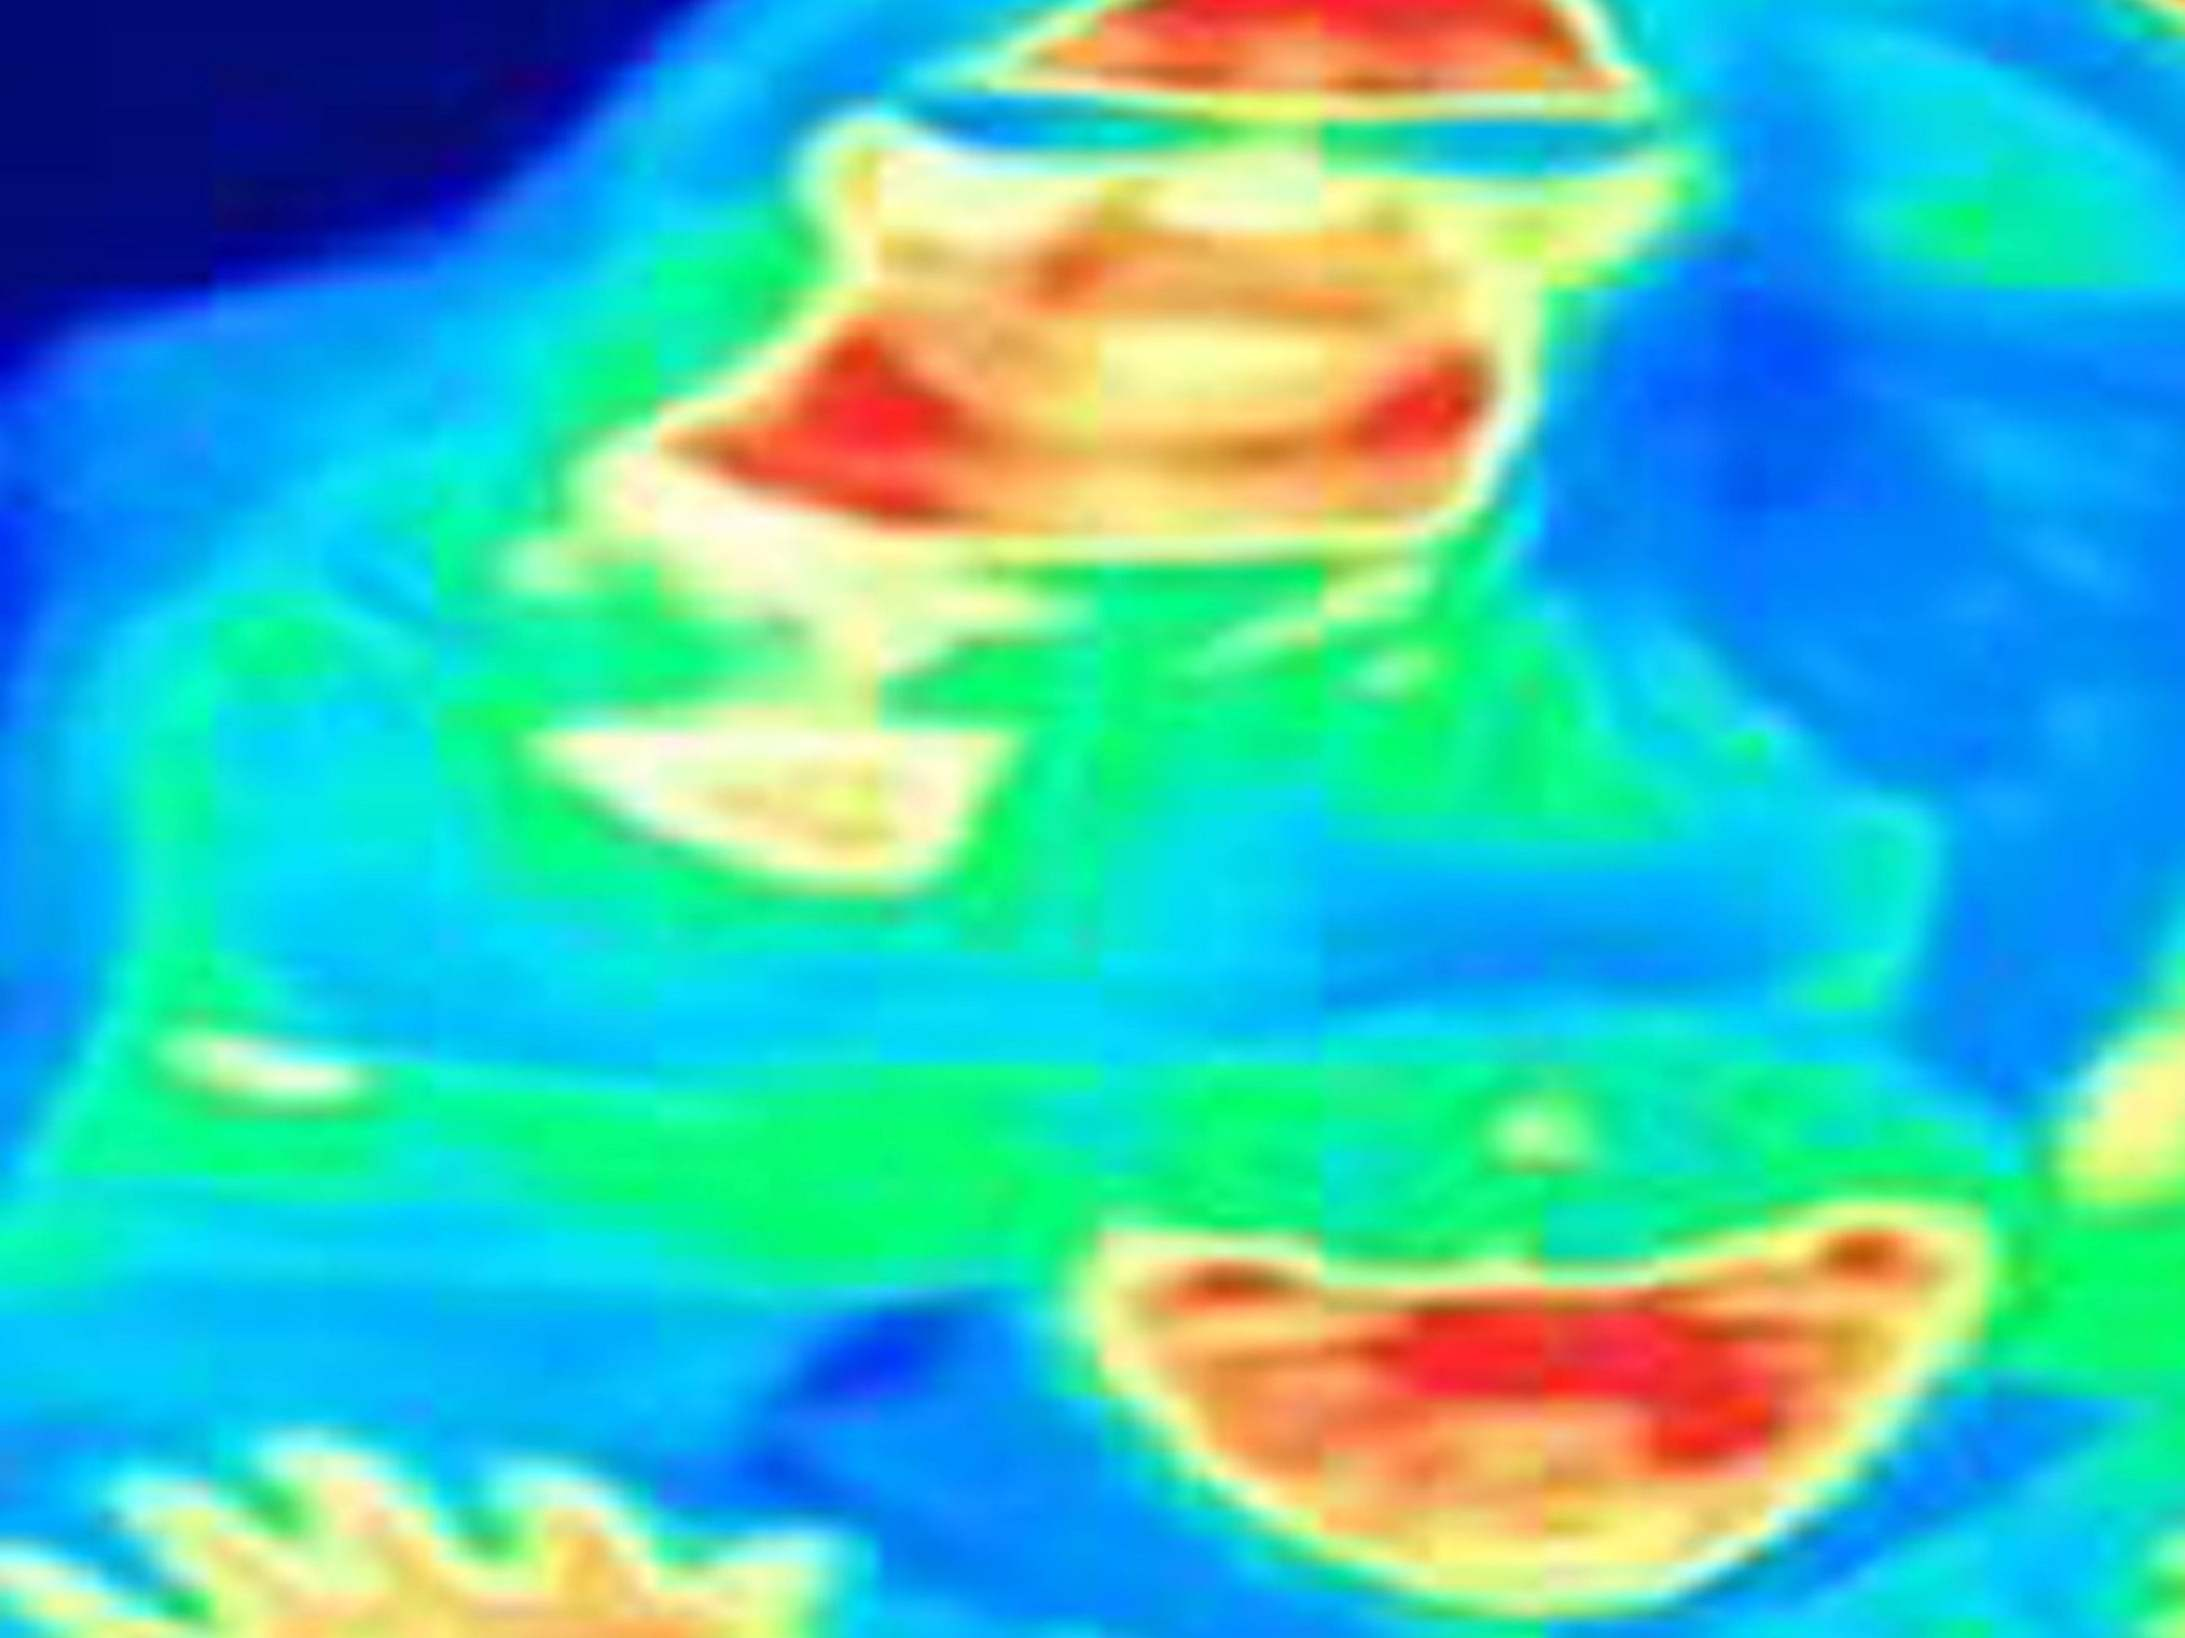 Woman's breast cancer detected by thermal imaging scan at tourist attraction